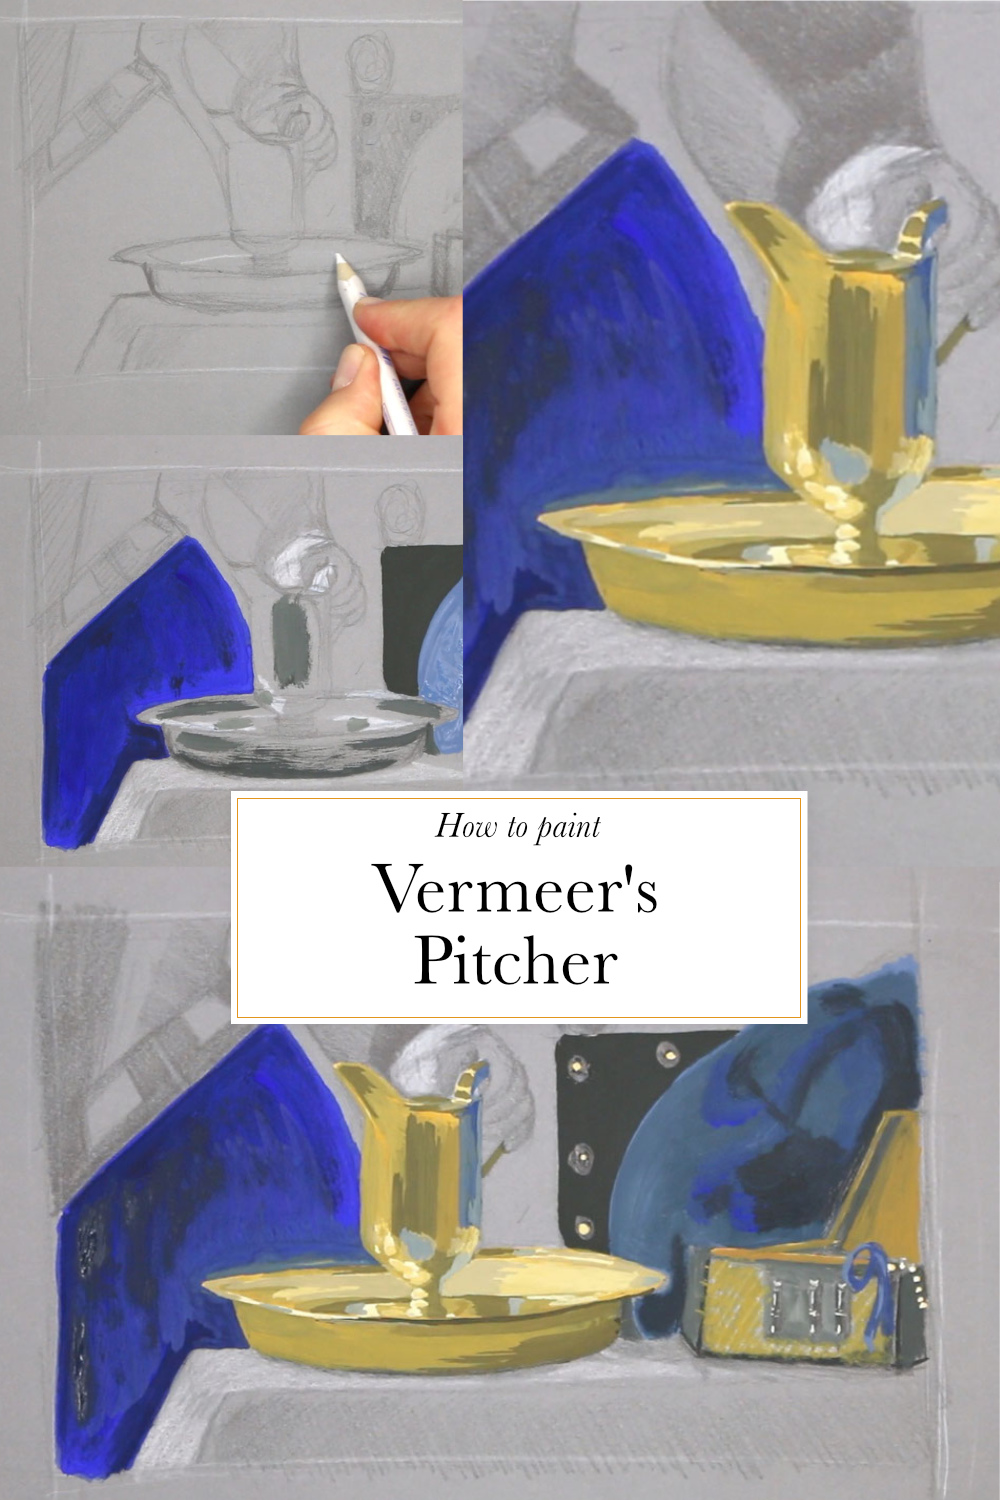 How to paint Vermeer's pitcher  | The Daily Atelier